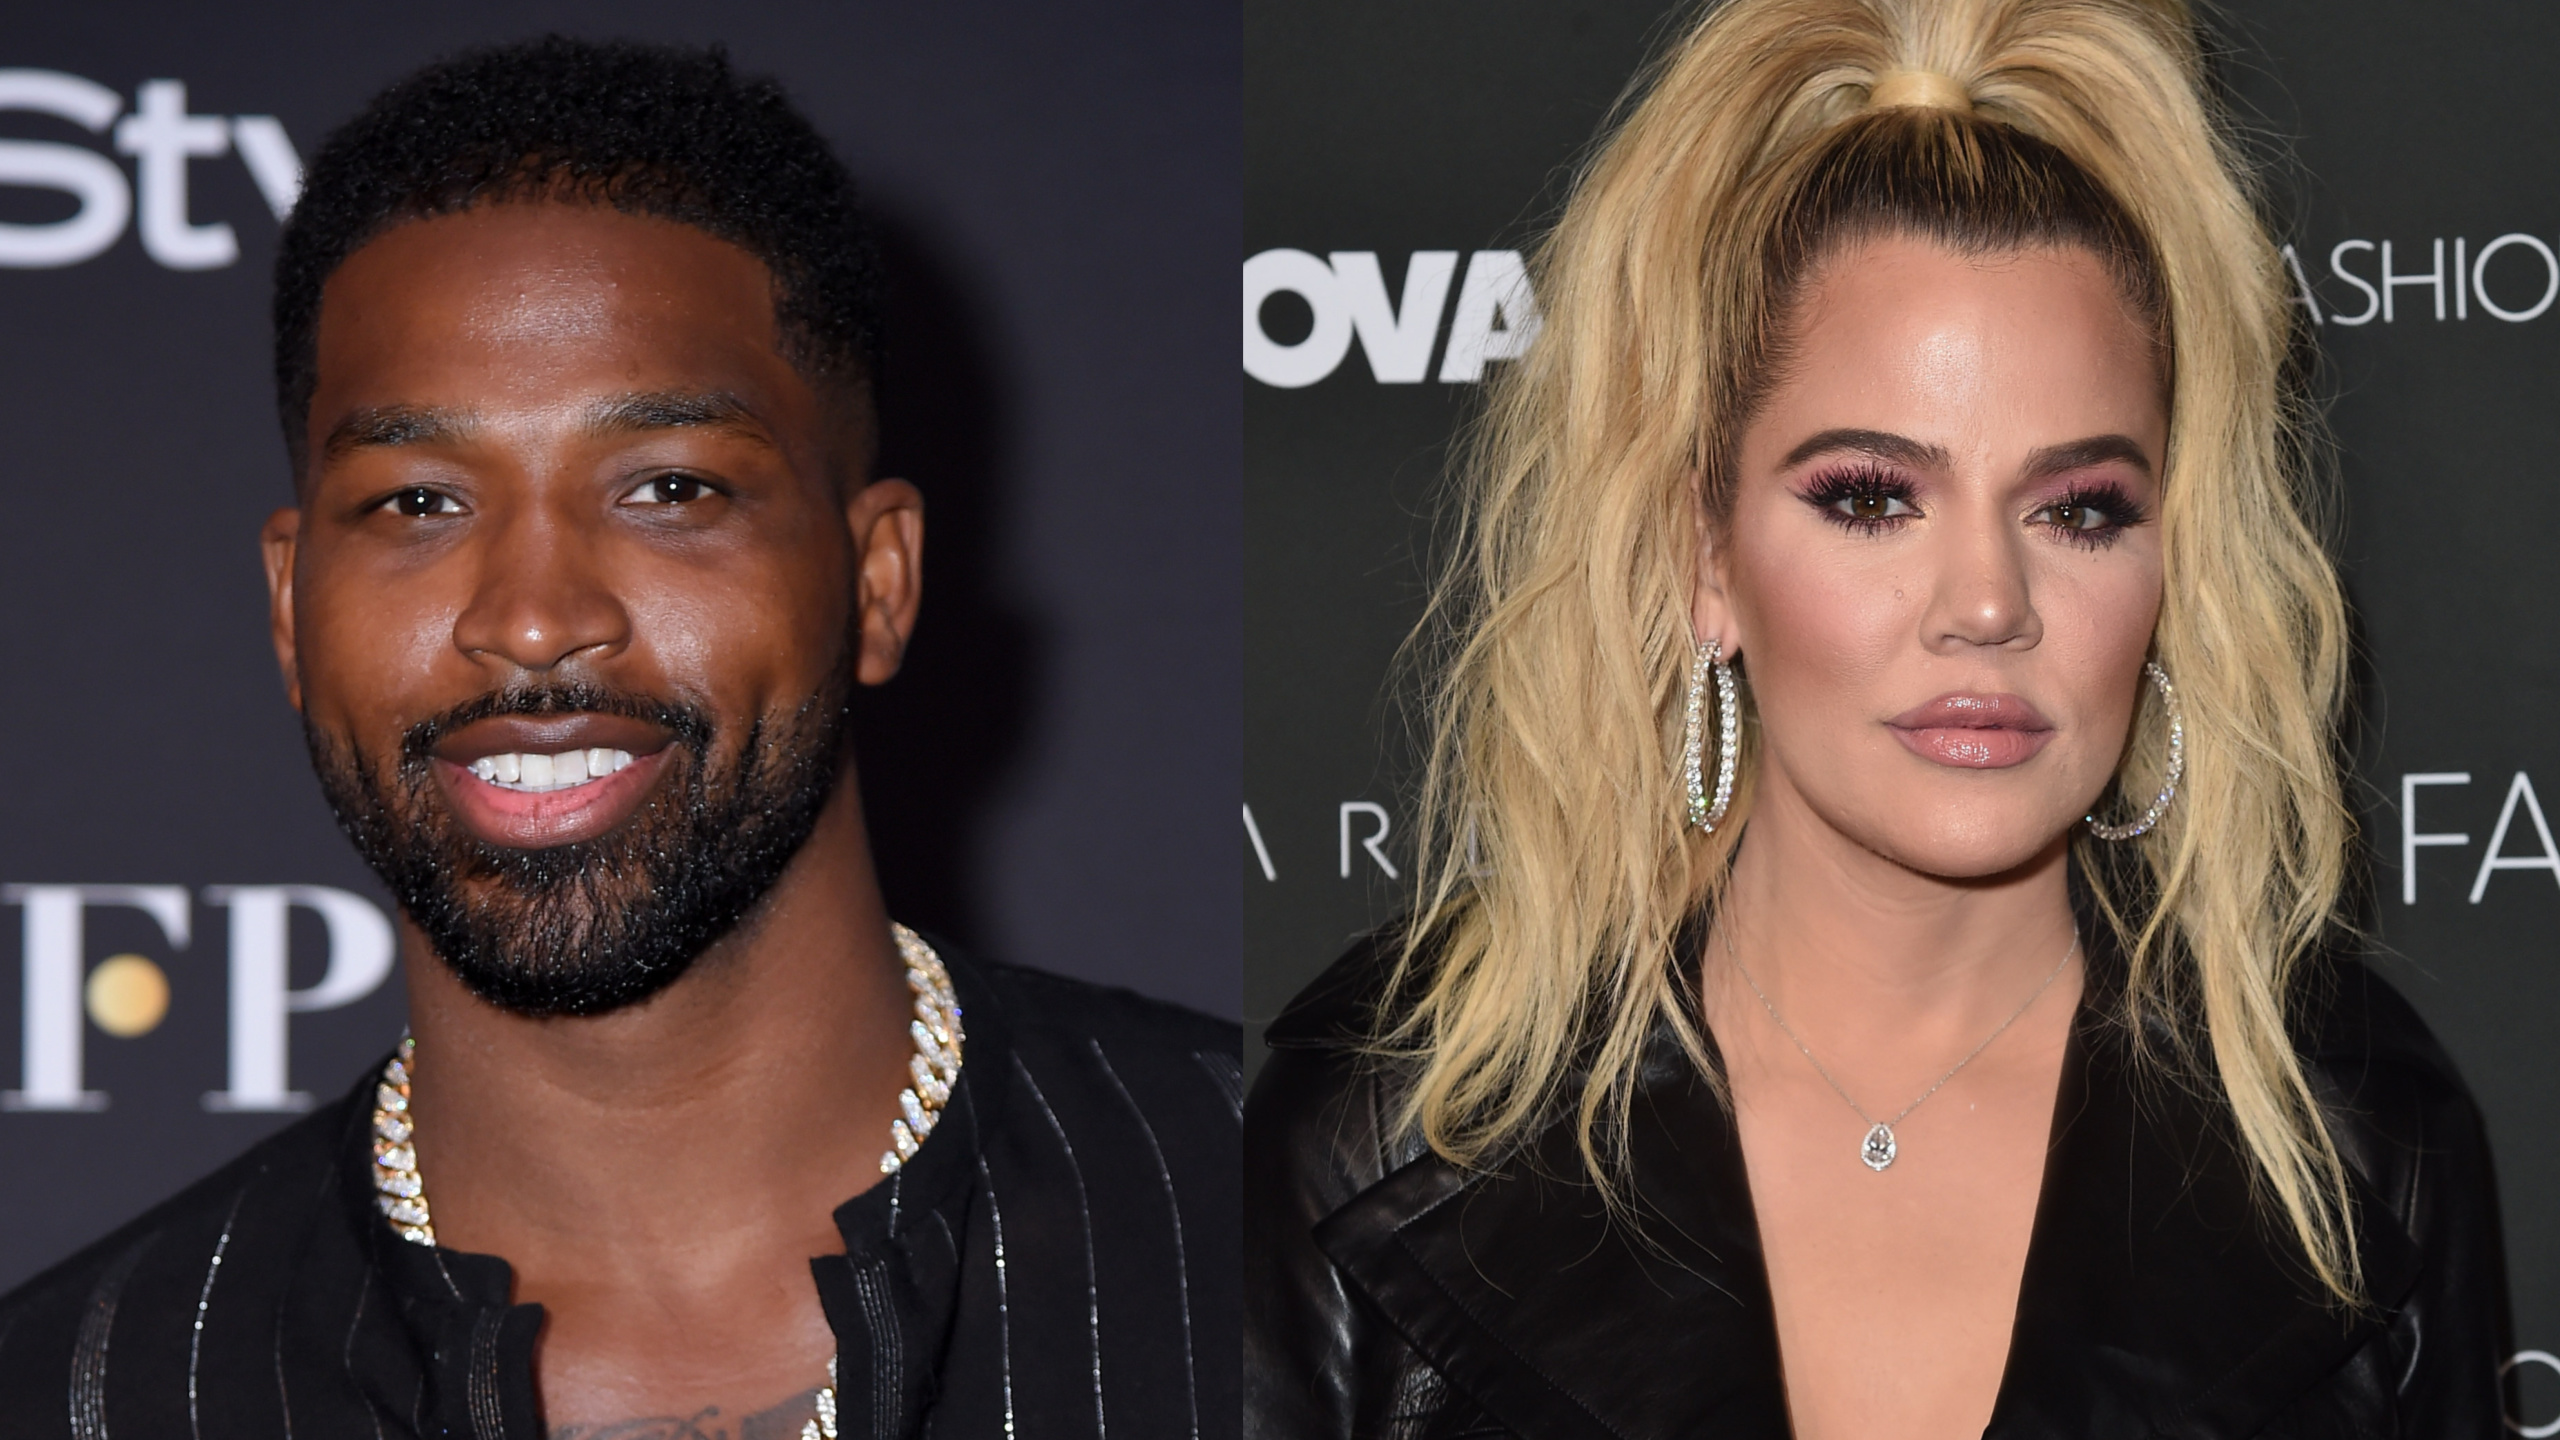 Khloe Kardashian and Tristan Thompson Officially Break Up After Alleged Affair